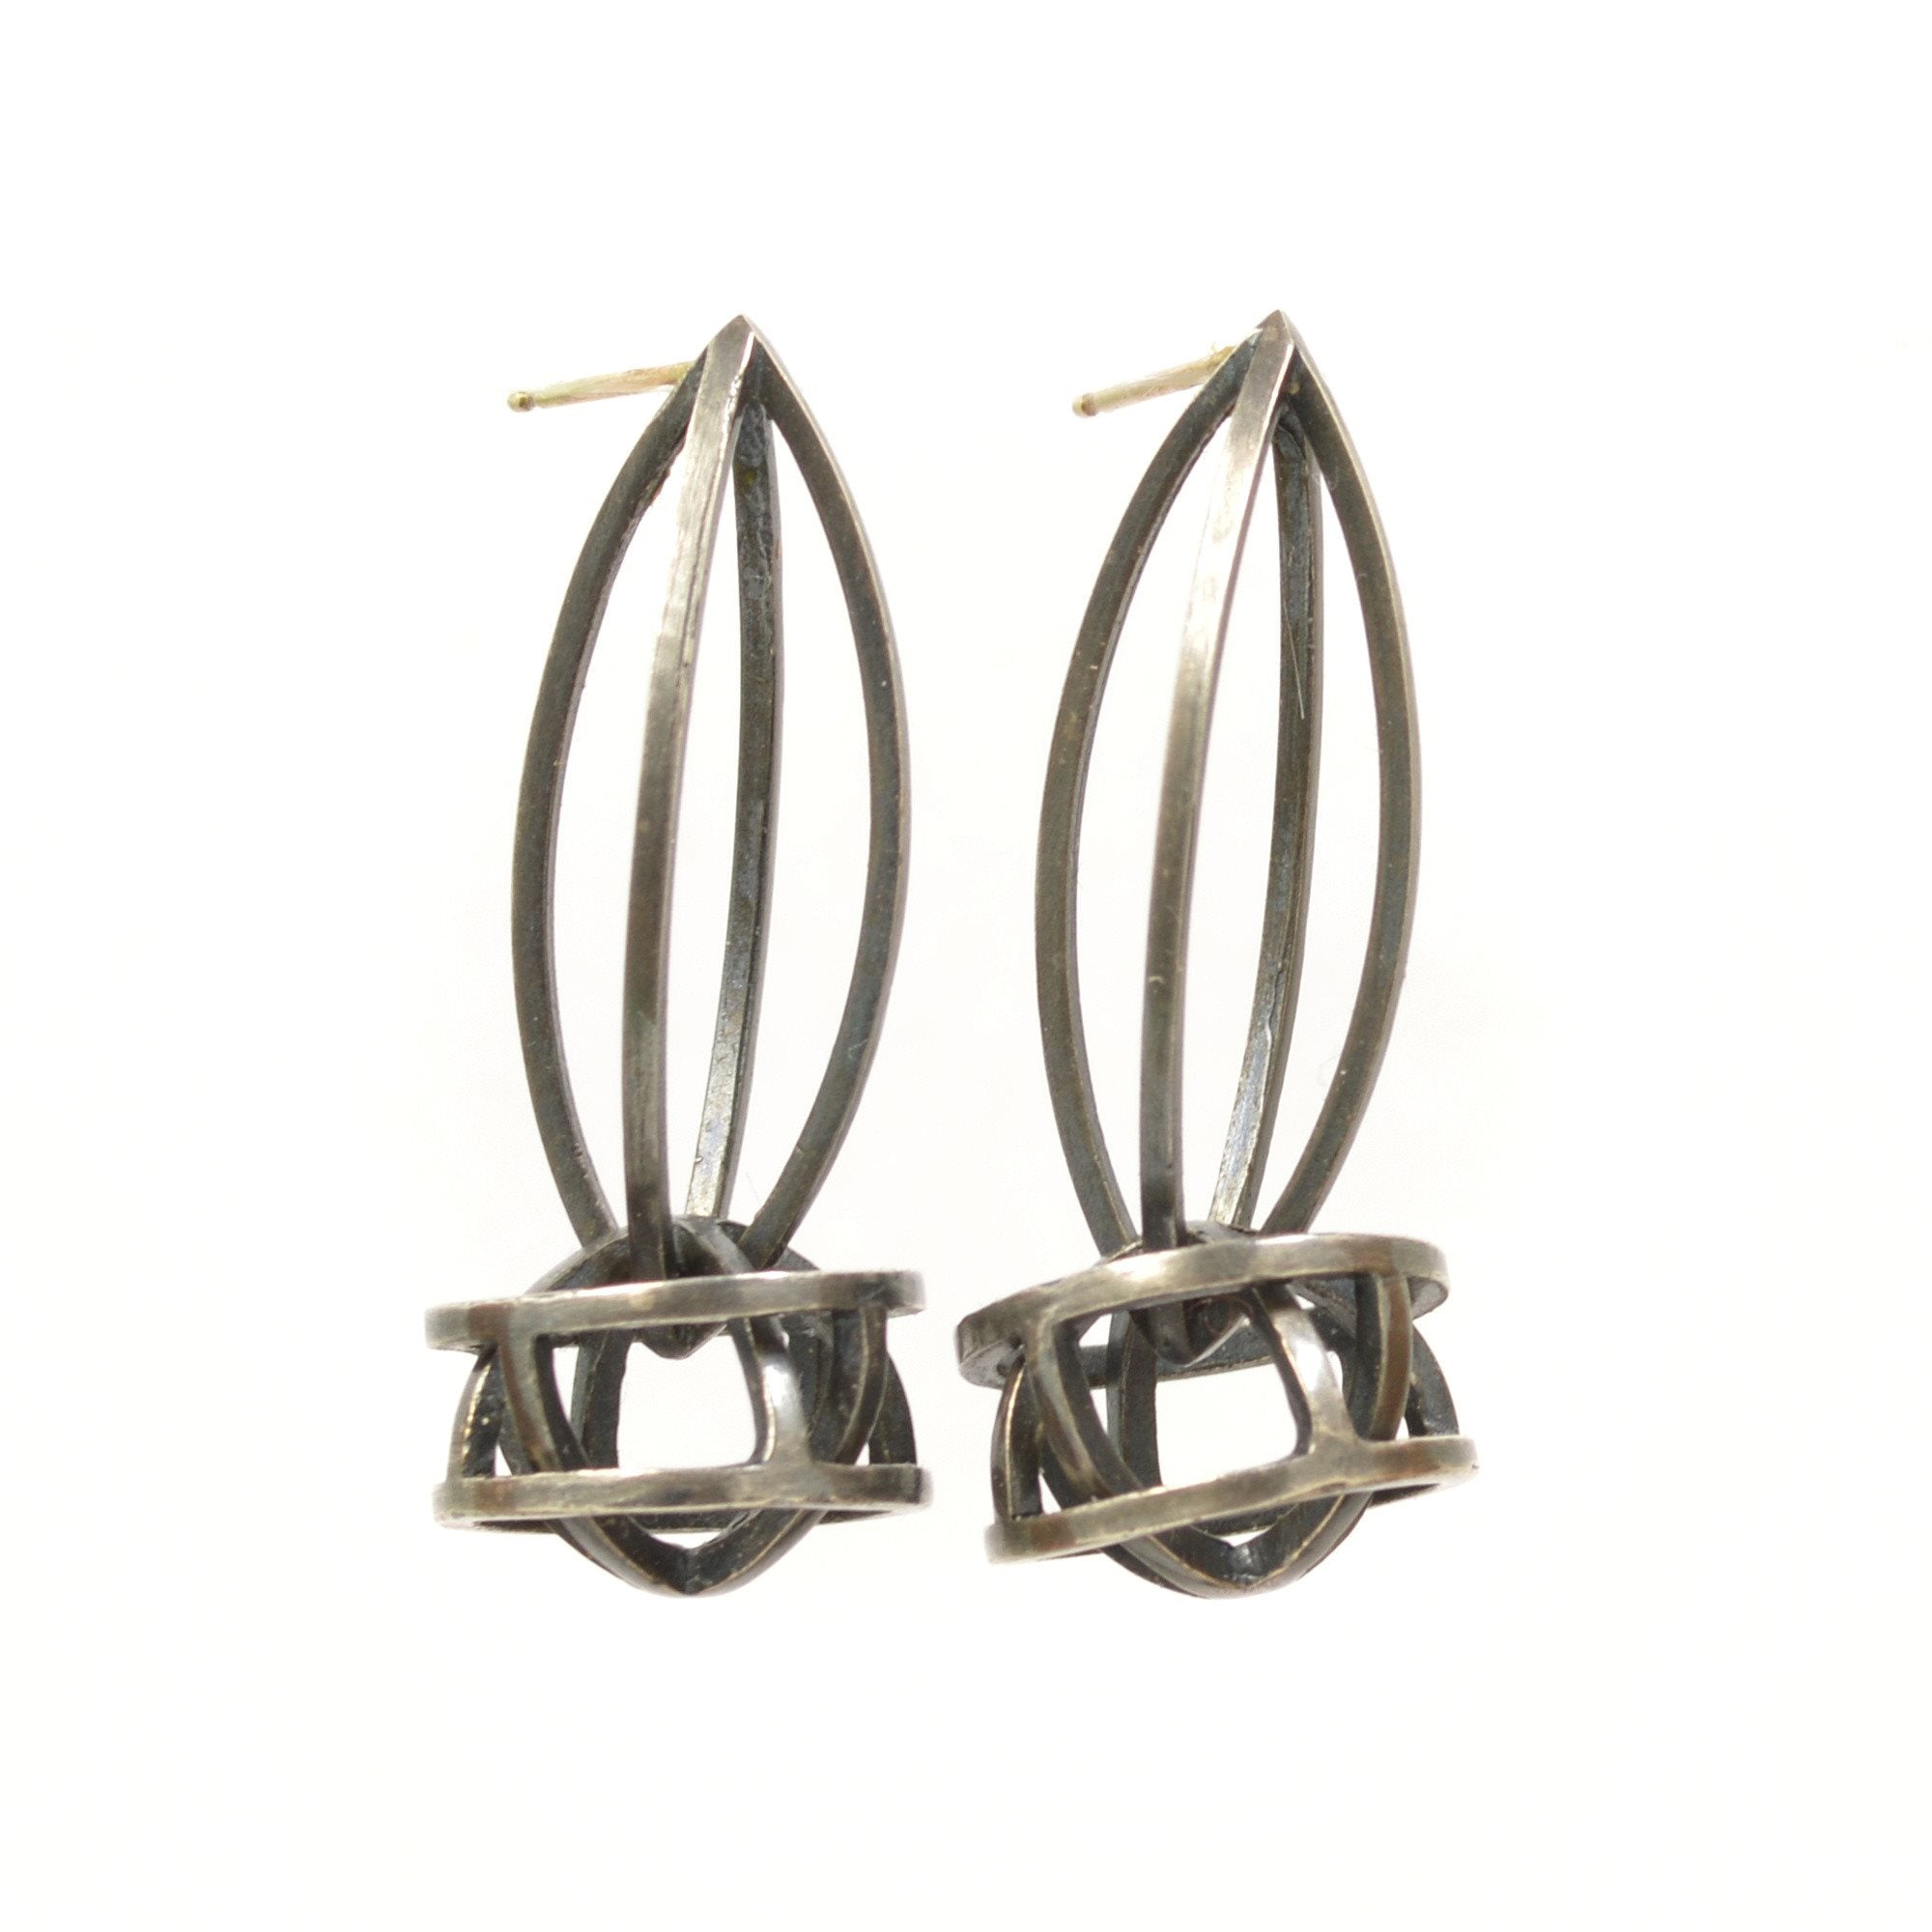 Lattis Link Earrings in Sterling Silver, Black Patina